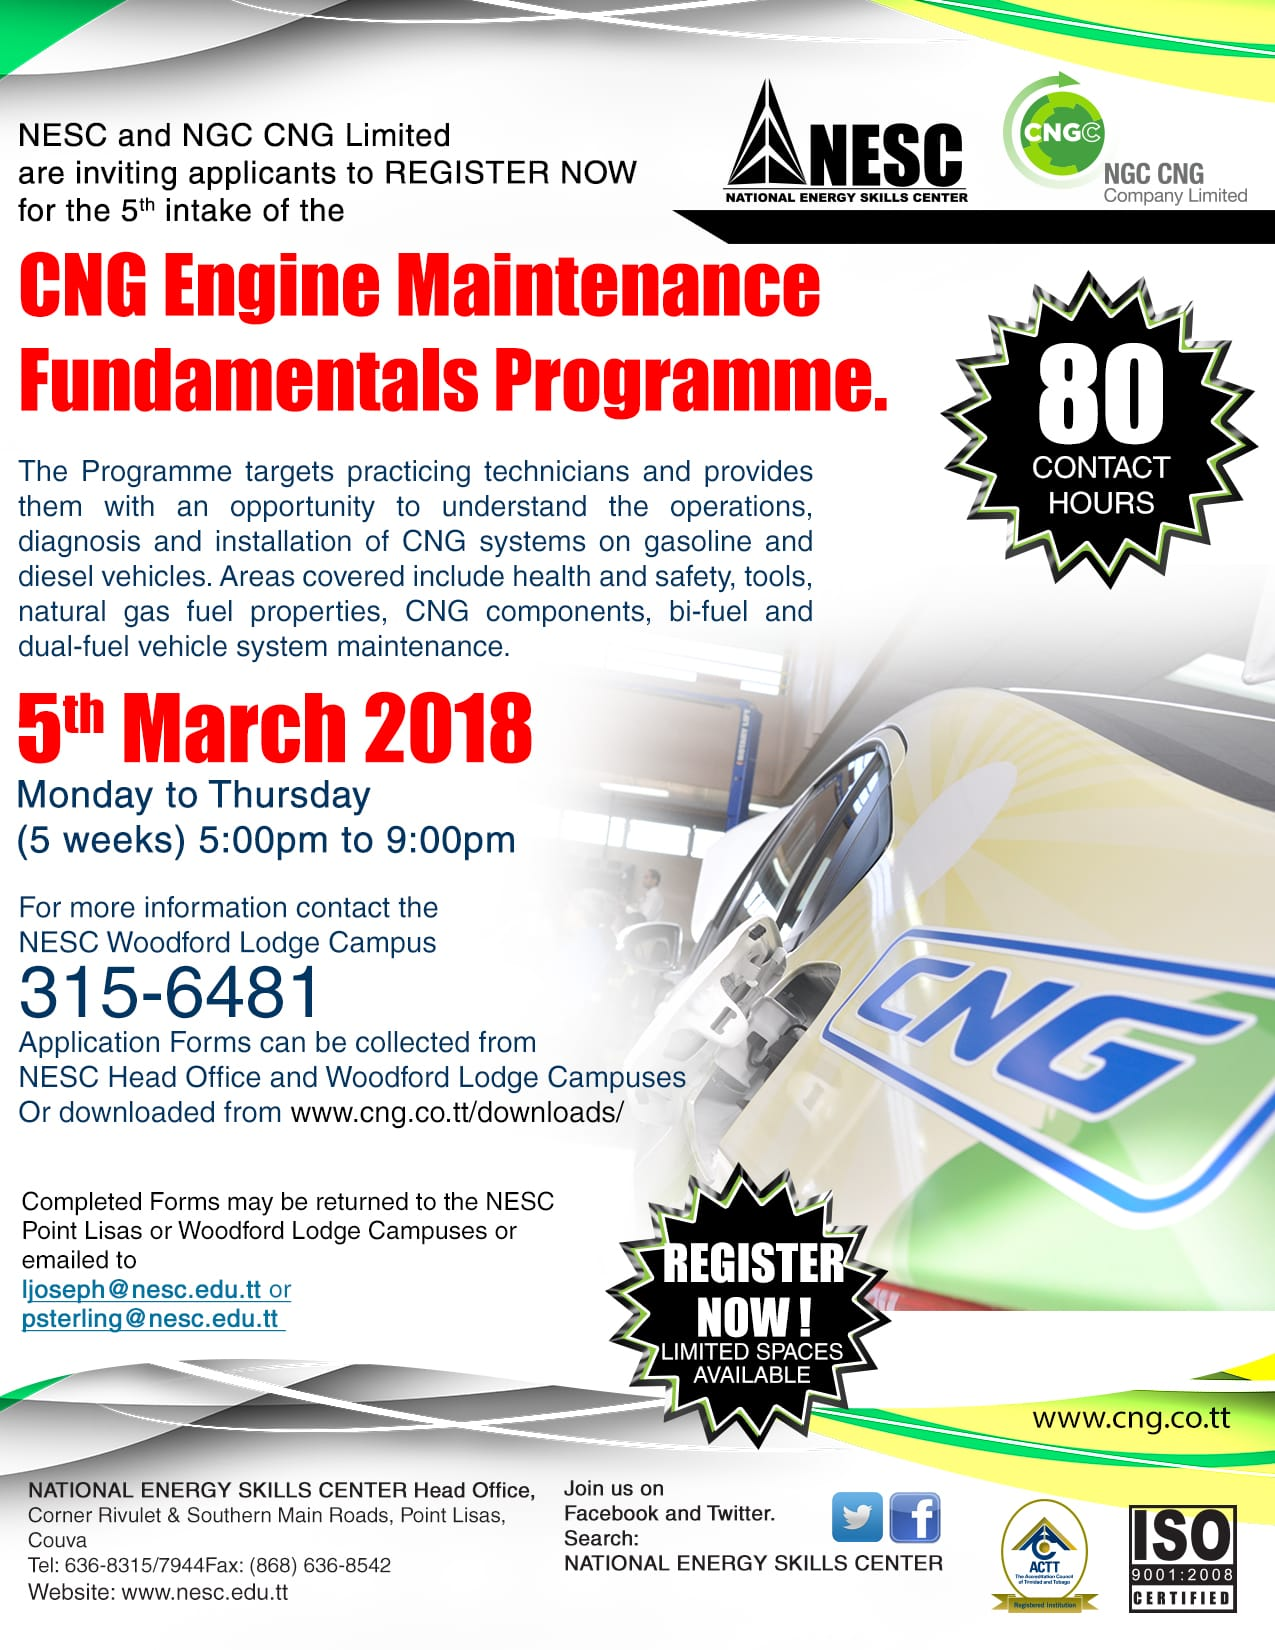 NESC Training Programme Available in CNG Engine Maintenance